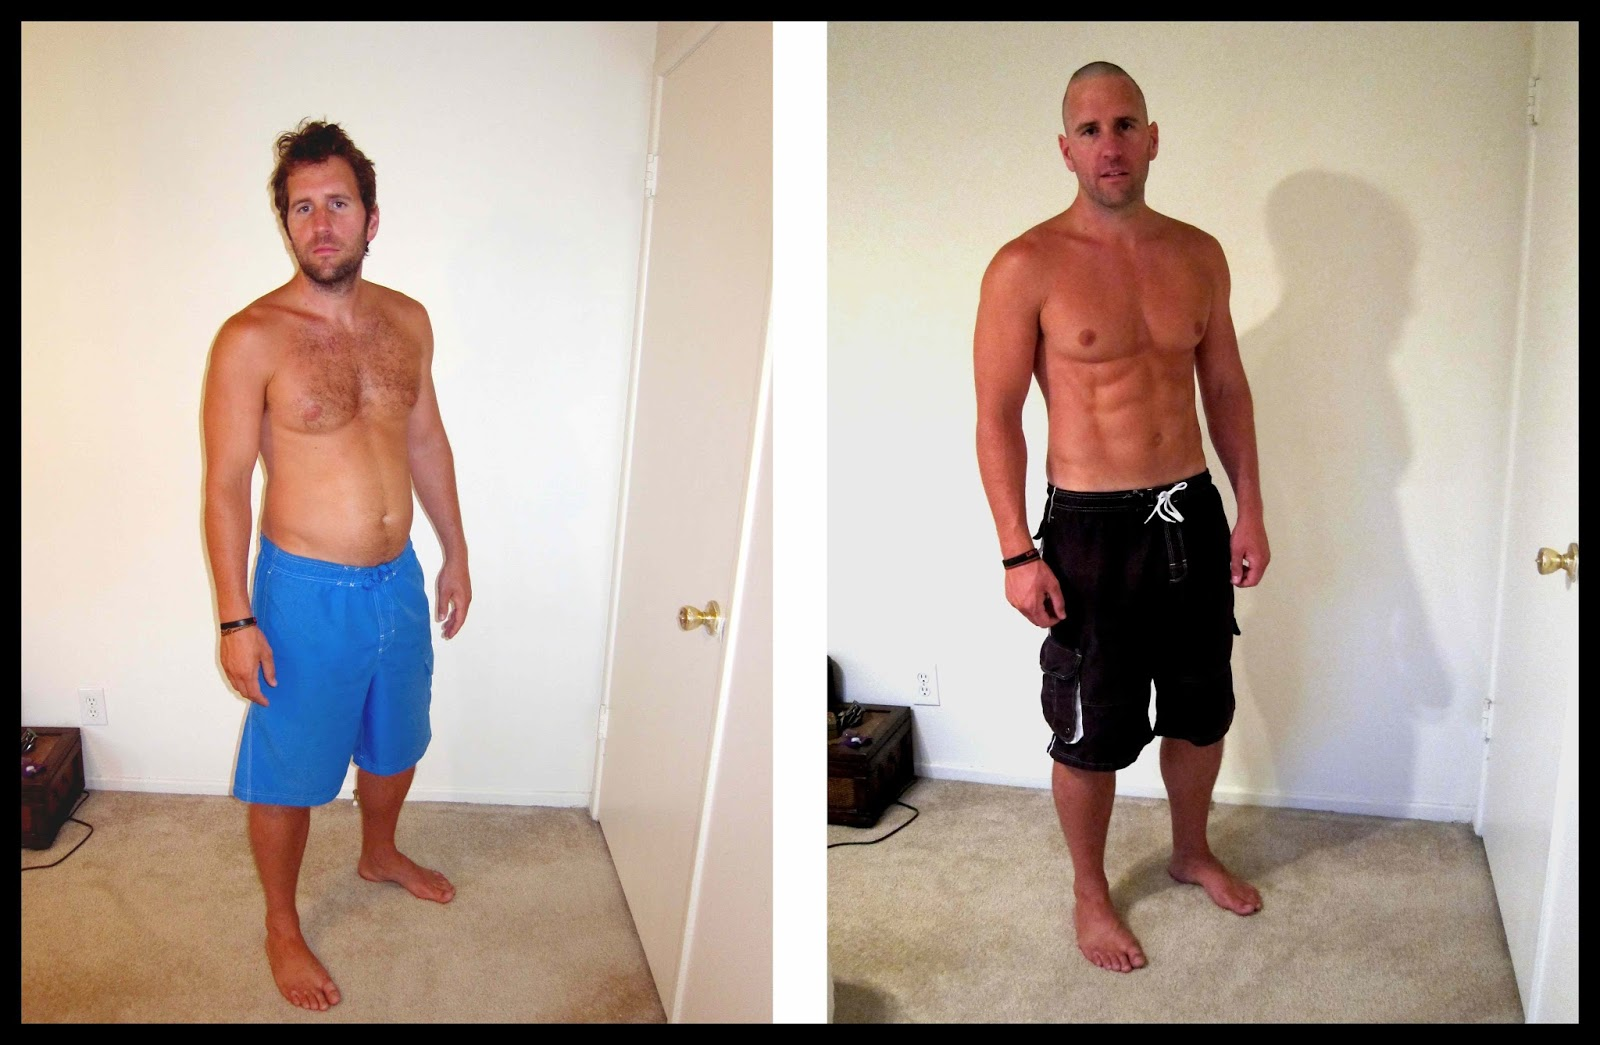 Clean eating diet to loss weight image 8